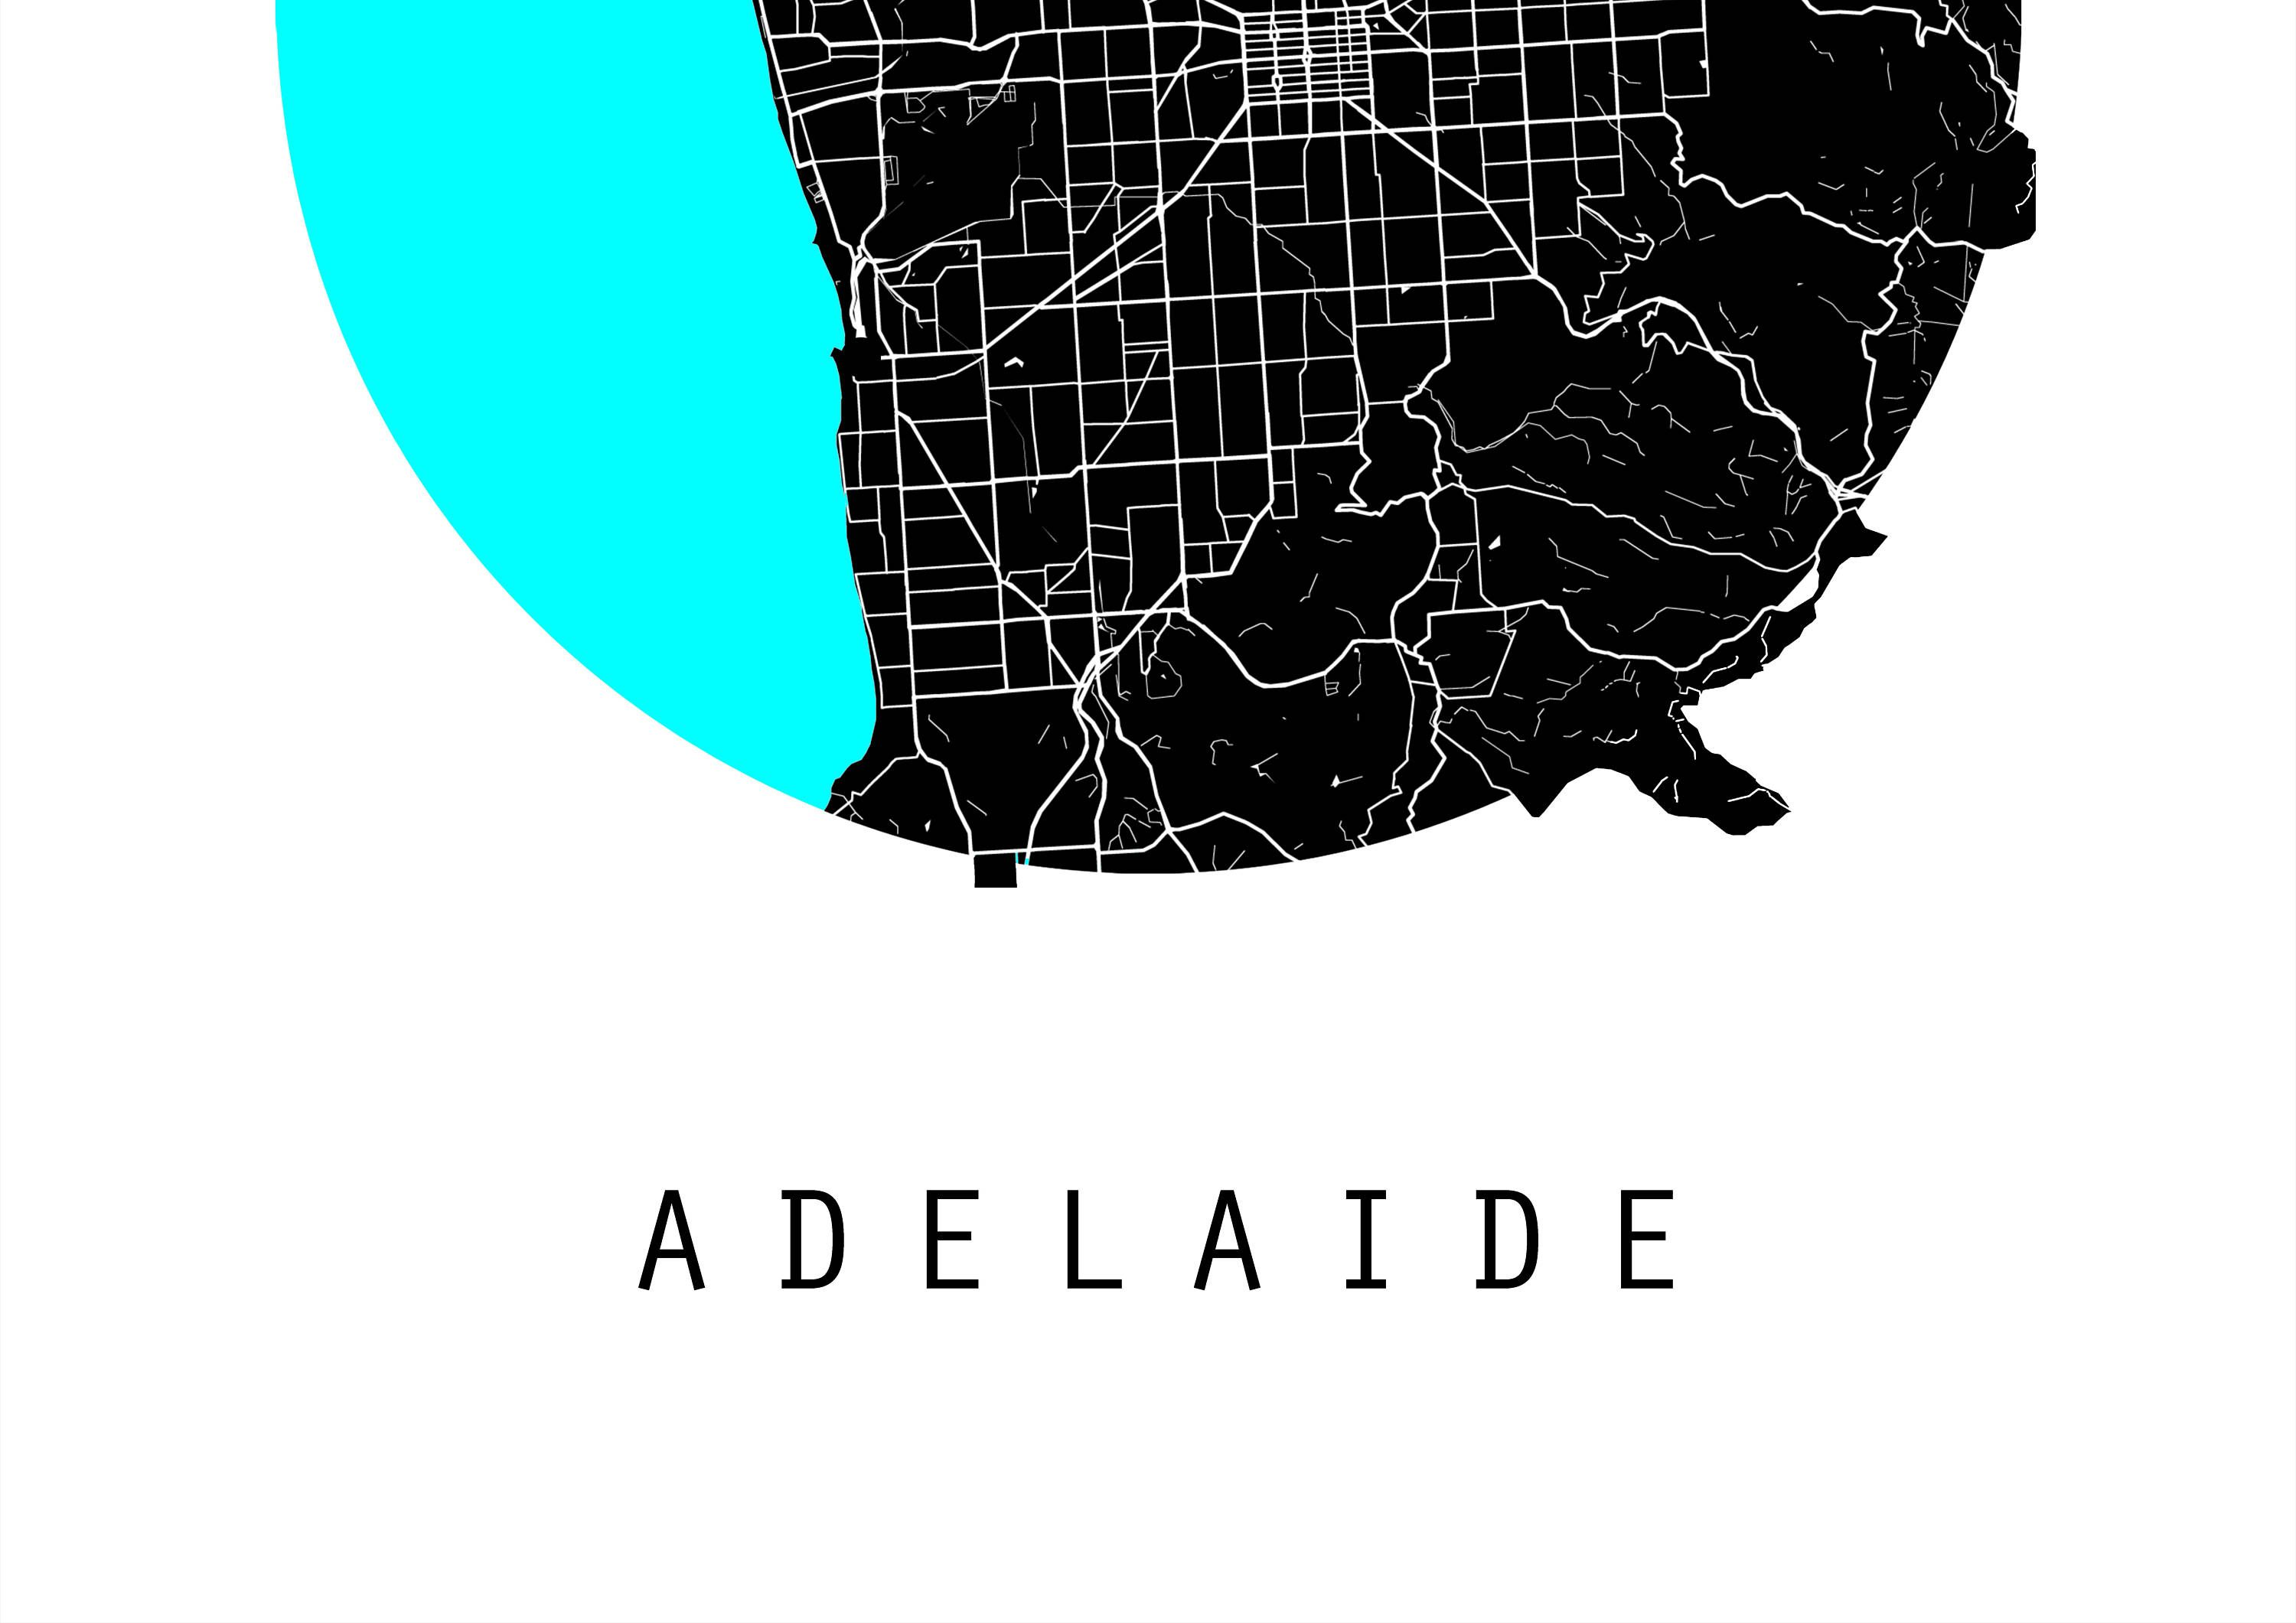 Adelaide Map Australia Map World Map Maps Black And White Map